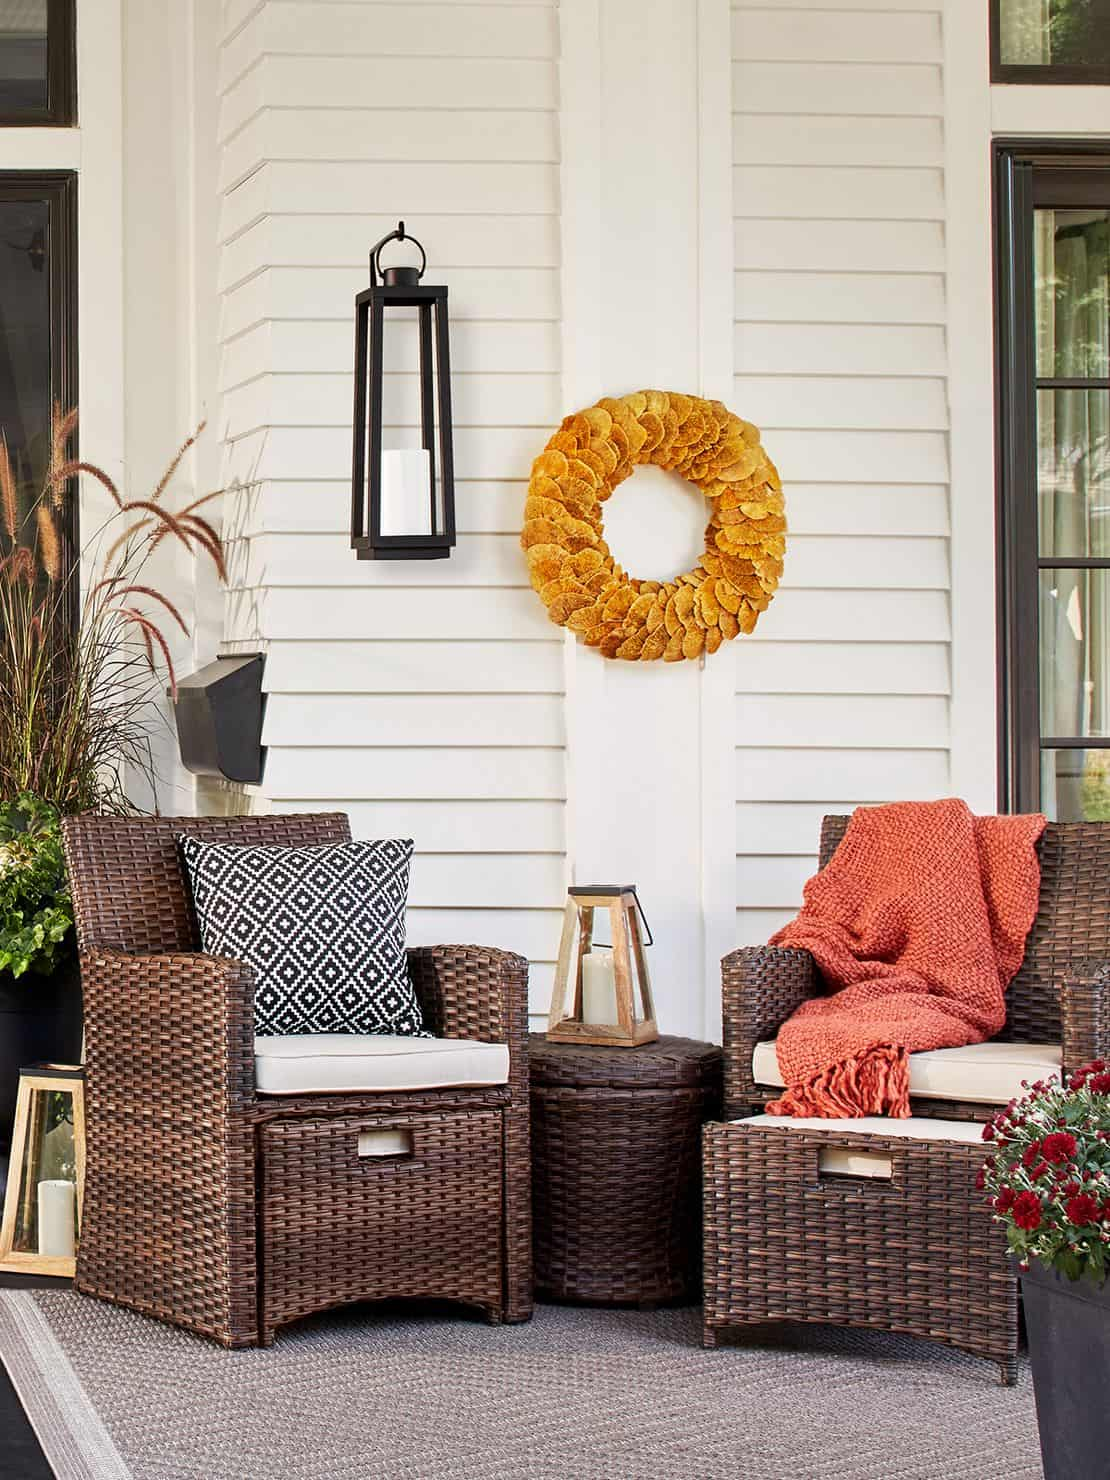 Take indoor items and bring them outdoors for a cozy outdoor upgrade.